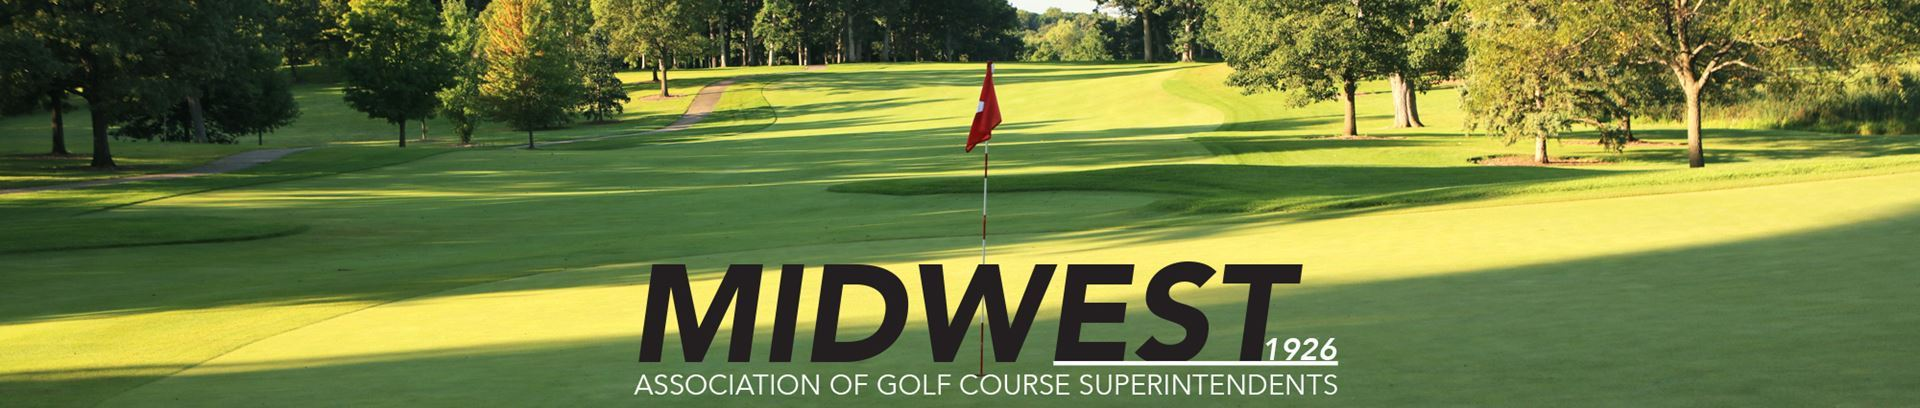 Midwest Association Of Golf Course Superintendents - Employment